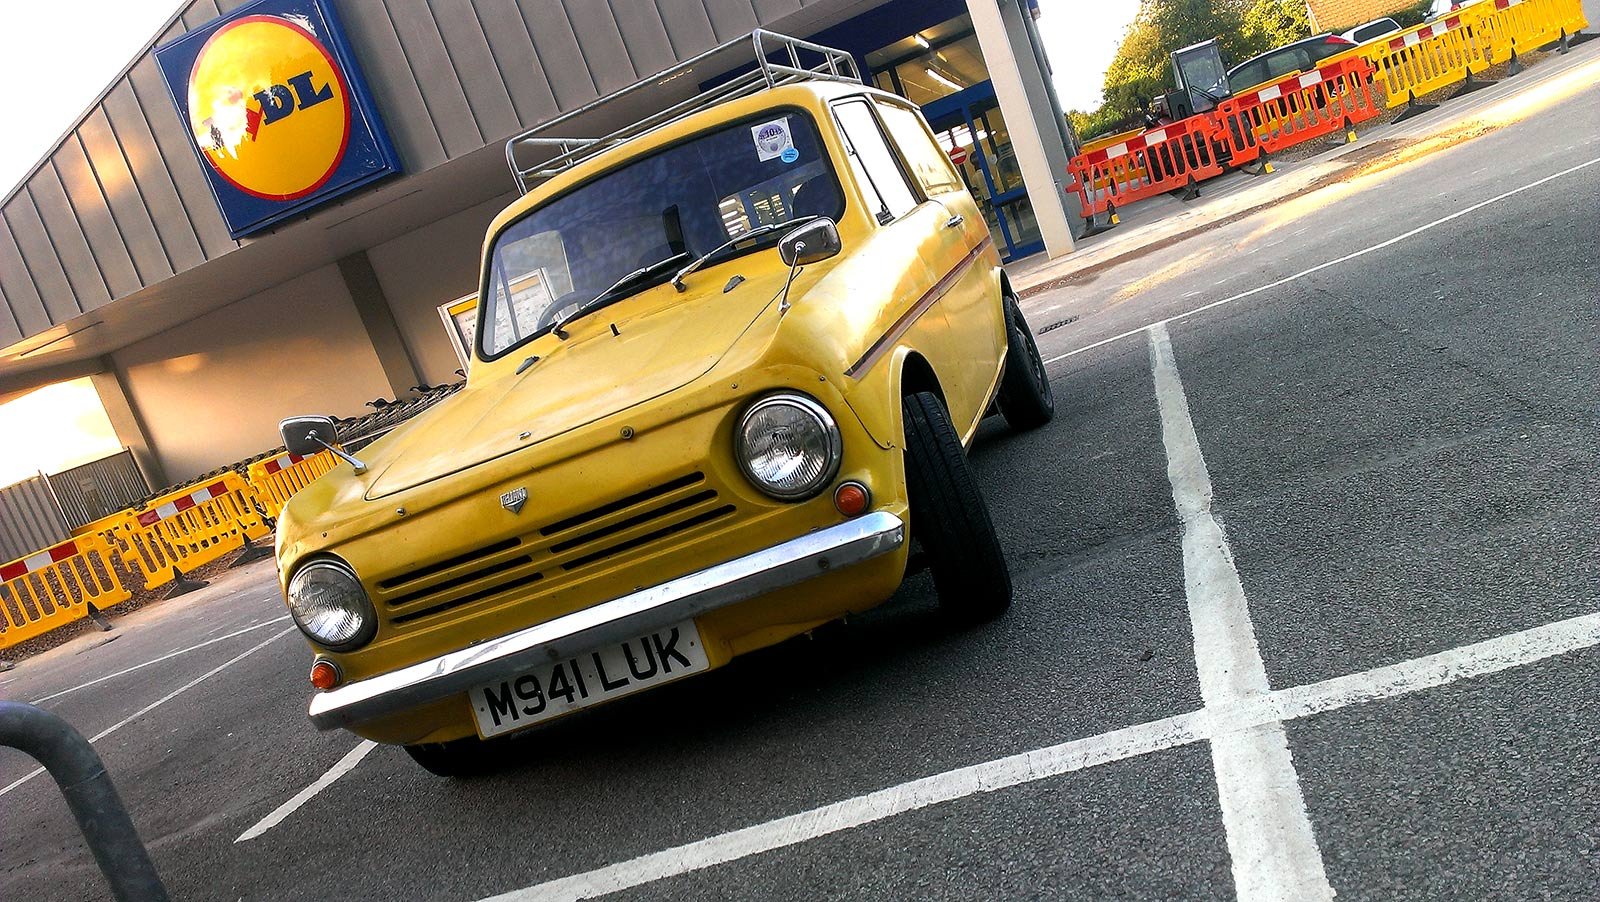 ICMSTUDIOS - A great Funky car I saw in the Lidl carpark Crowborough